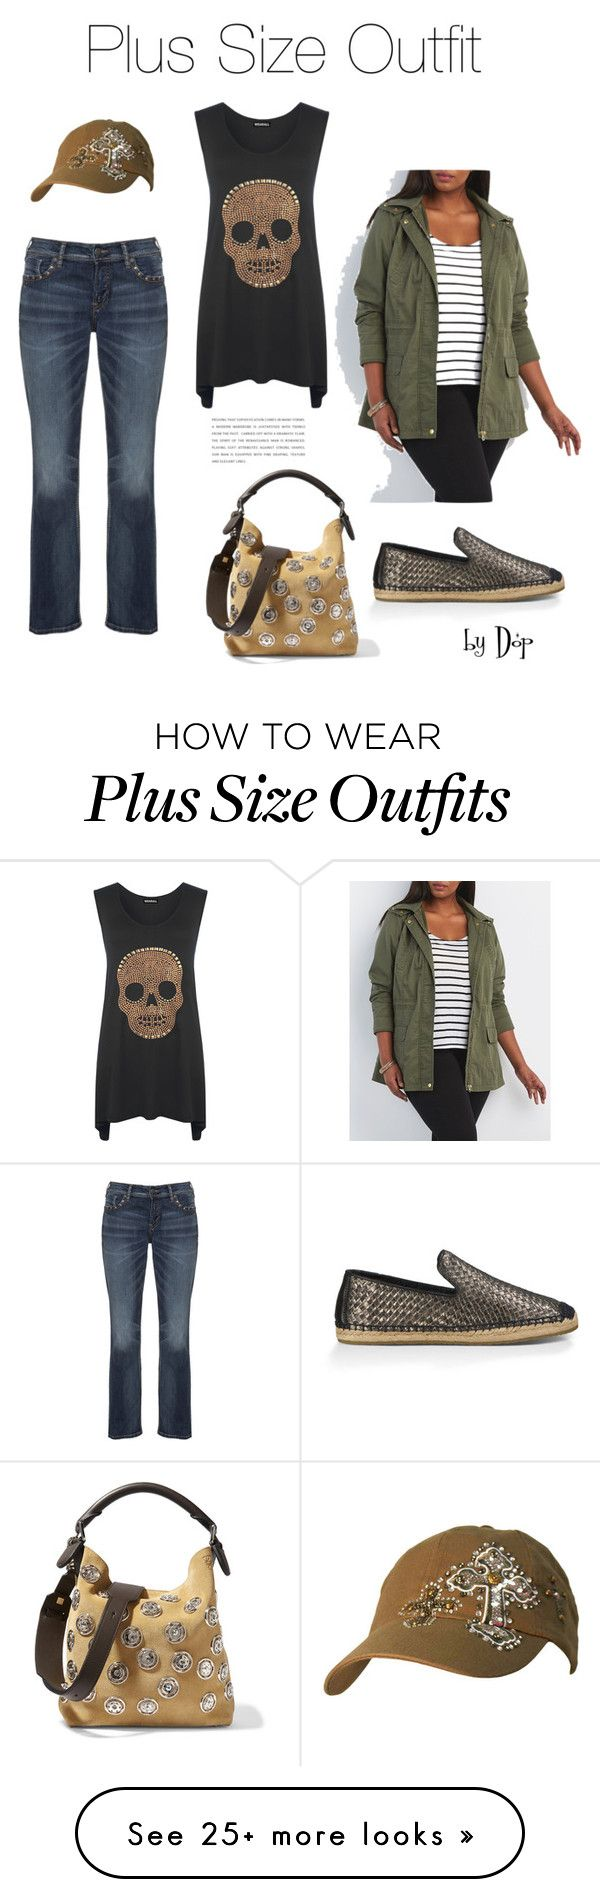 """""""Plus Size Outfit"""" by dop37 on Polyvore featuring Silver Jeans Co., WearAll, Charlotte Russe, UGG Australia, Loewe and plus size clothing"""